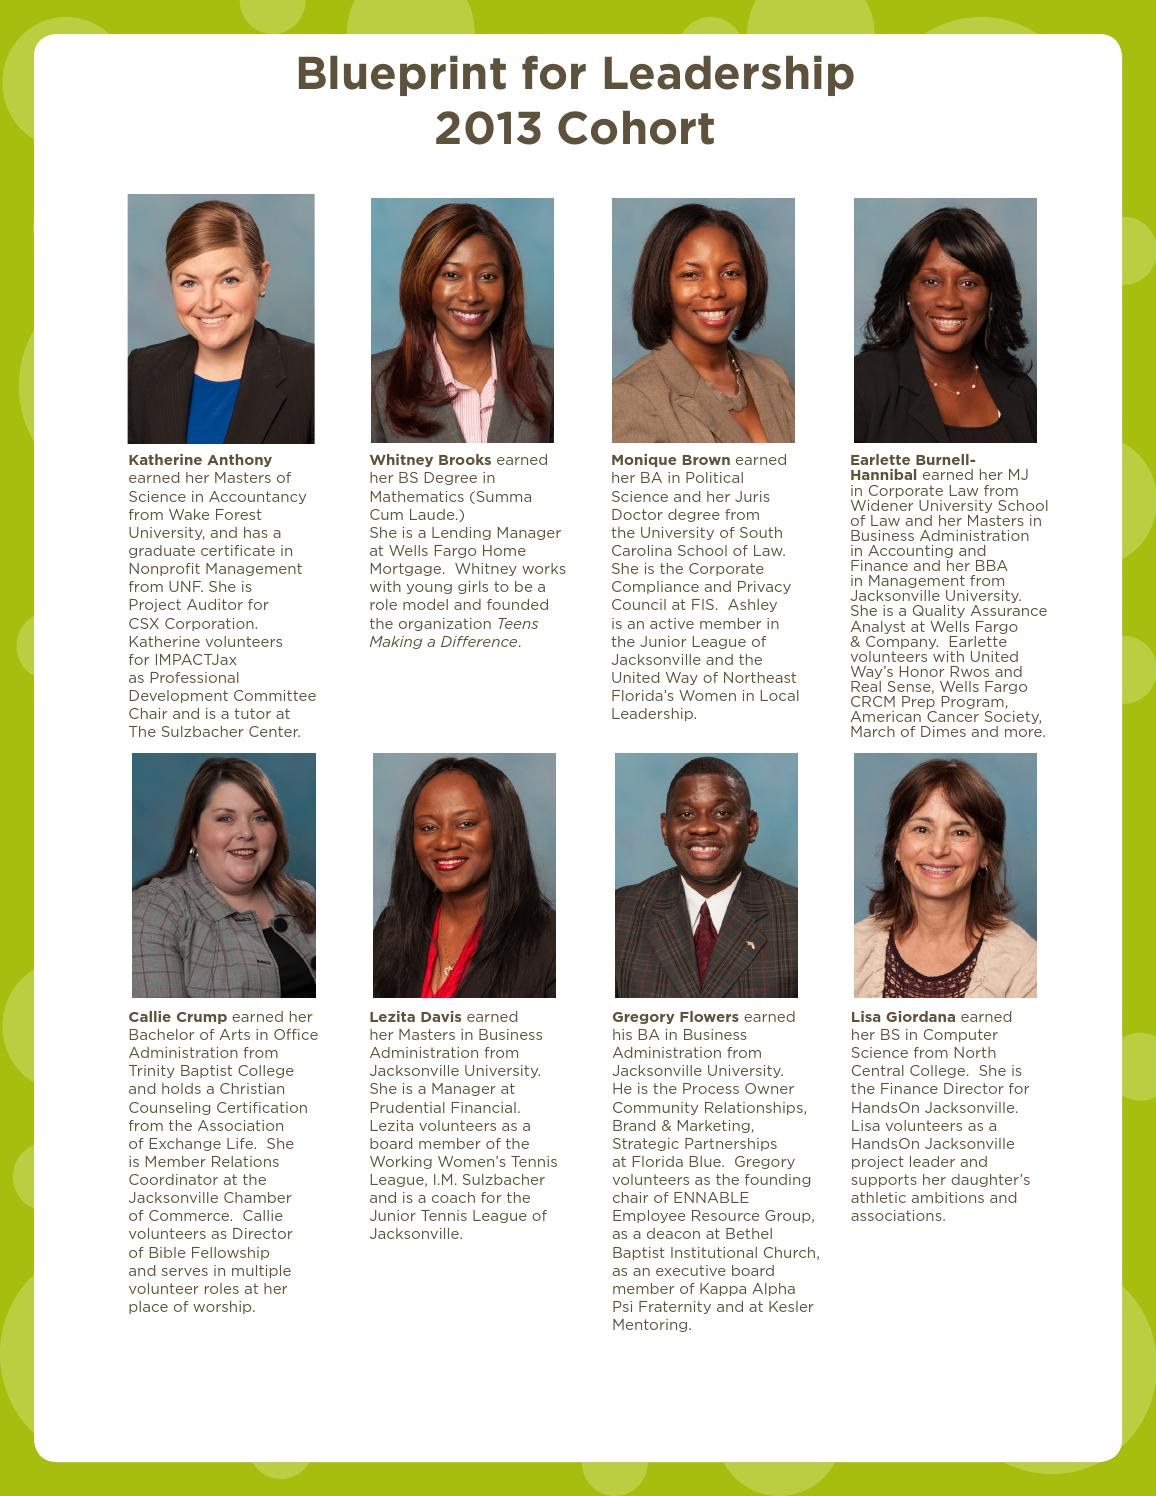 2013 blueprint for leadership yearbook by handson jacksonville issuu 1betcityfo Images